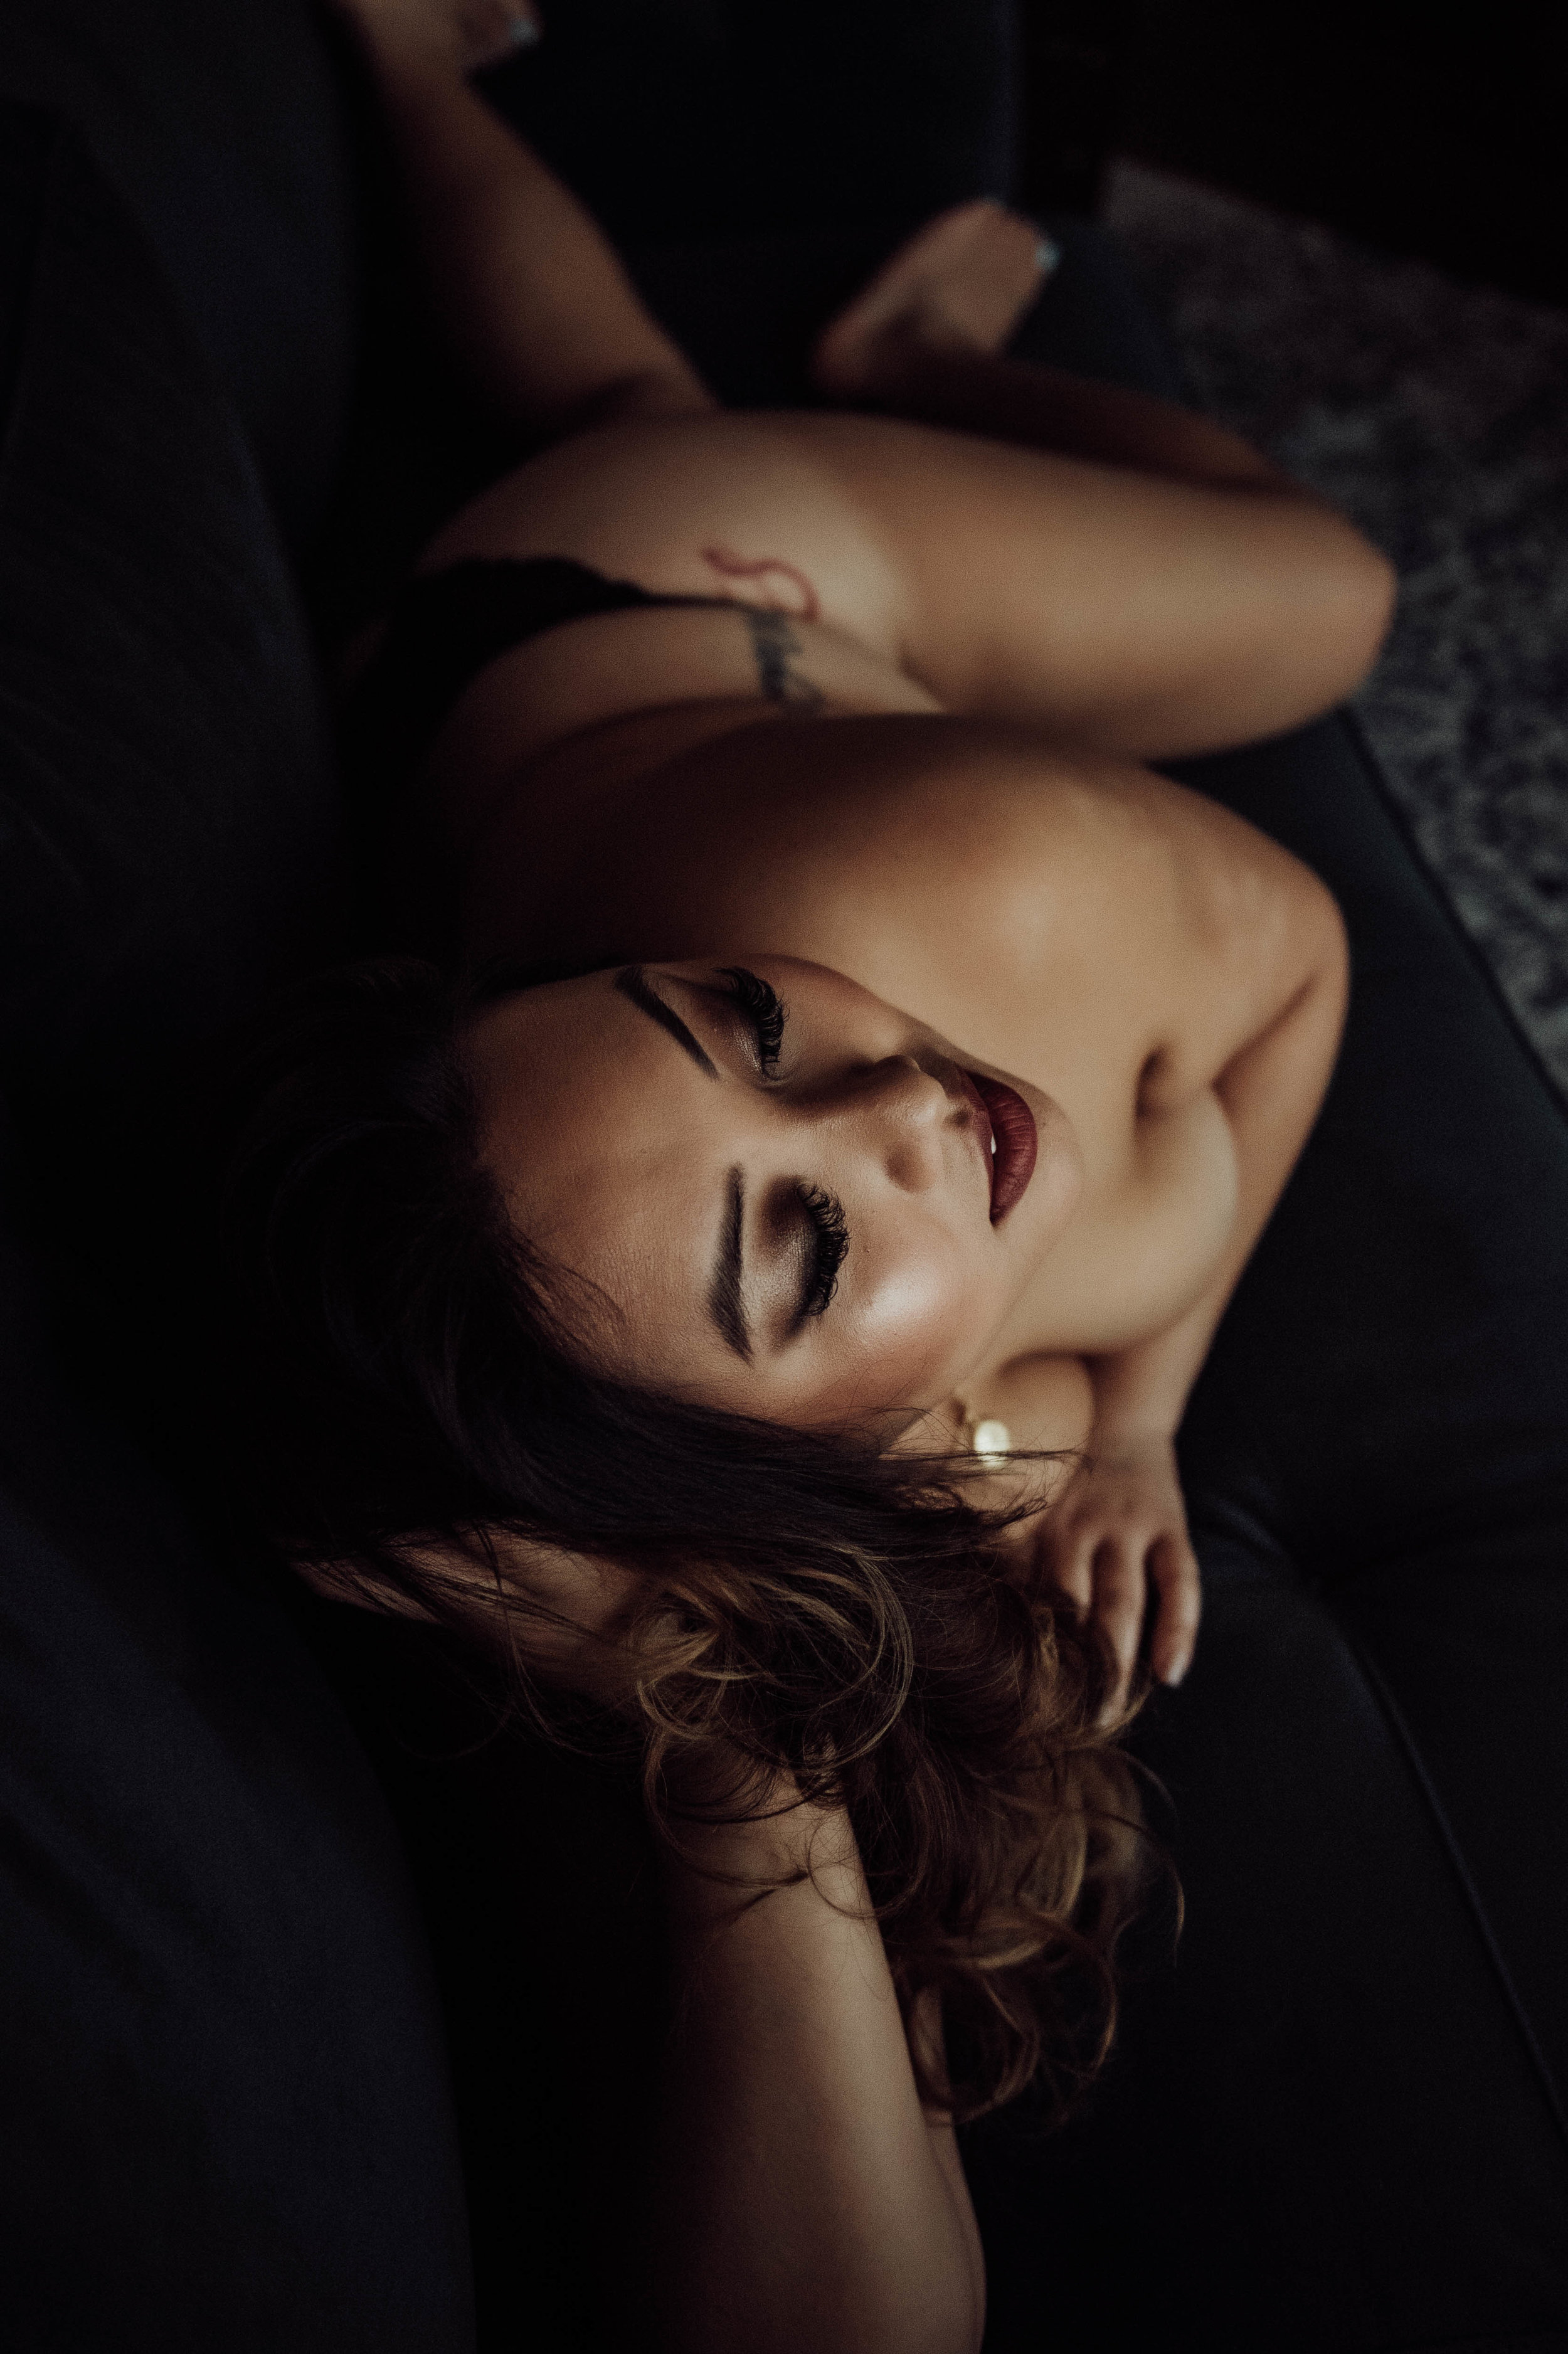 Nude Plus size asian woman laying on couch boudoir photography new york studio